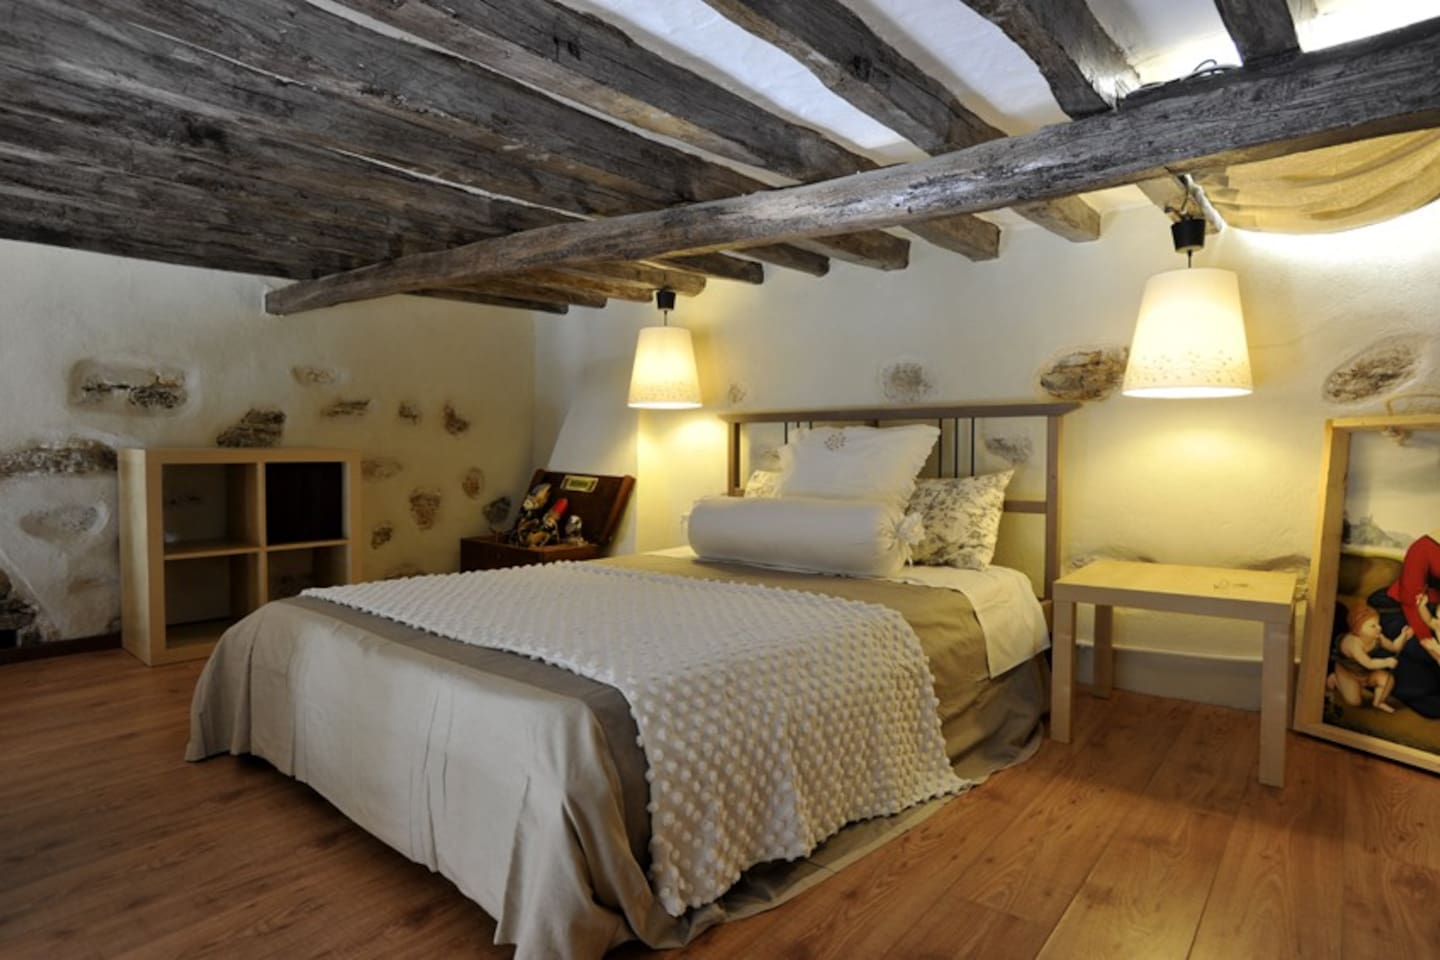 The comfortable bedroom in the mezzanine with wonderful design!